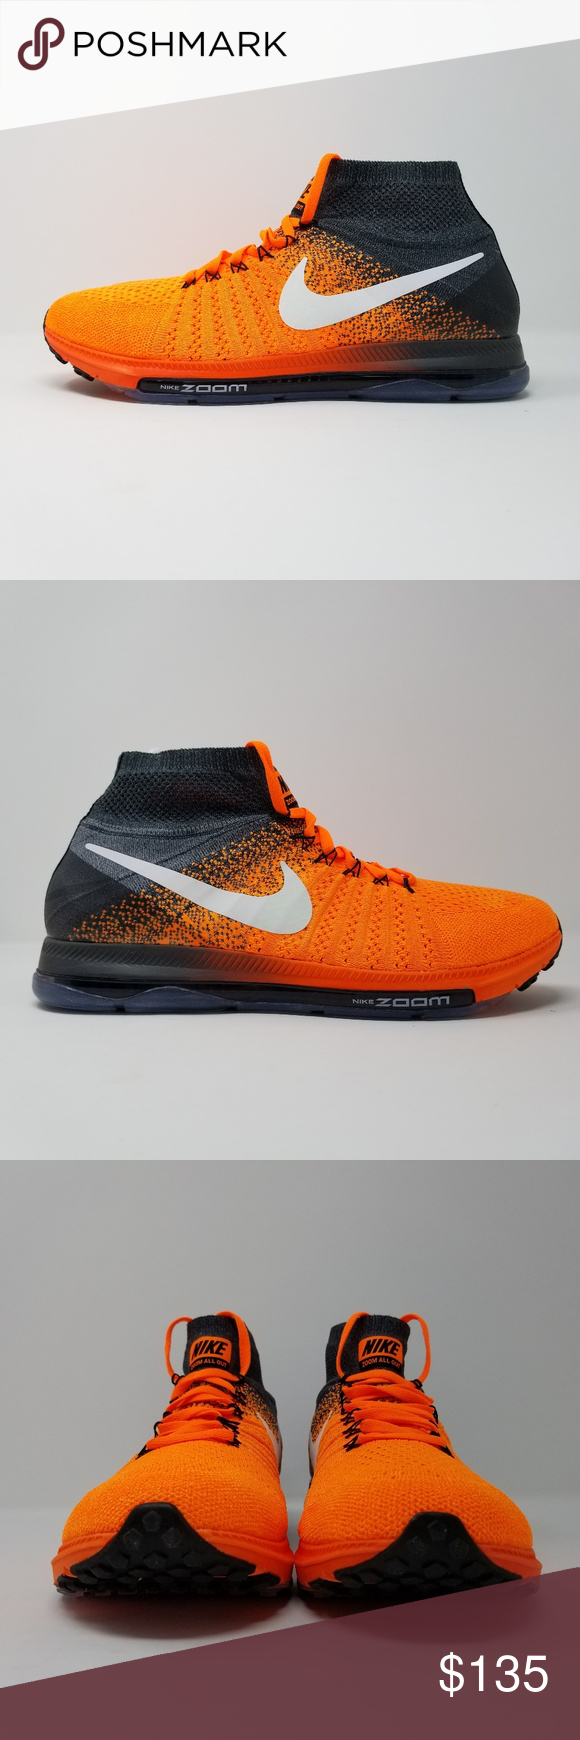 b8a667e46d97 Nike Zoom All Out Flyknit Mens Running Shoes Nike Zoom All Out Flyknit Mens  Running Shoes Style Number  844134 800 Color  Orange White Grey Size  US 10  ...